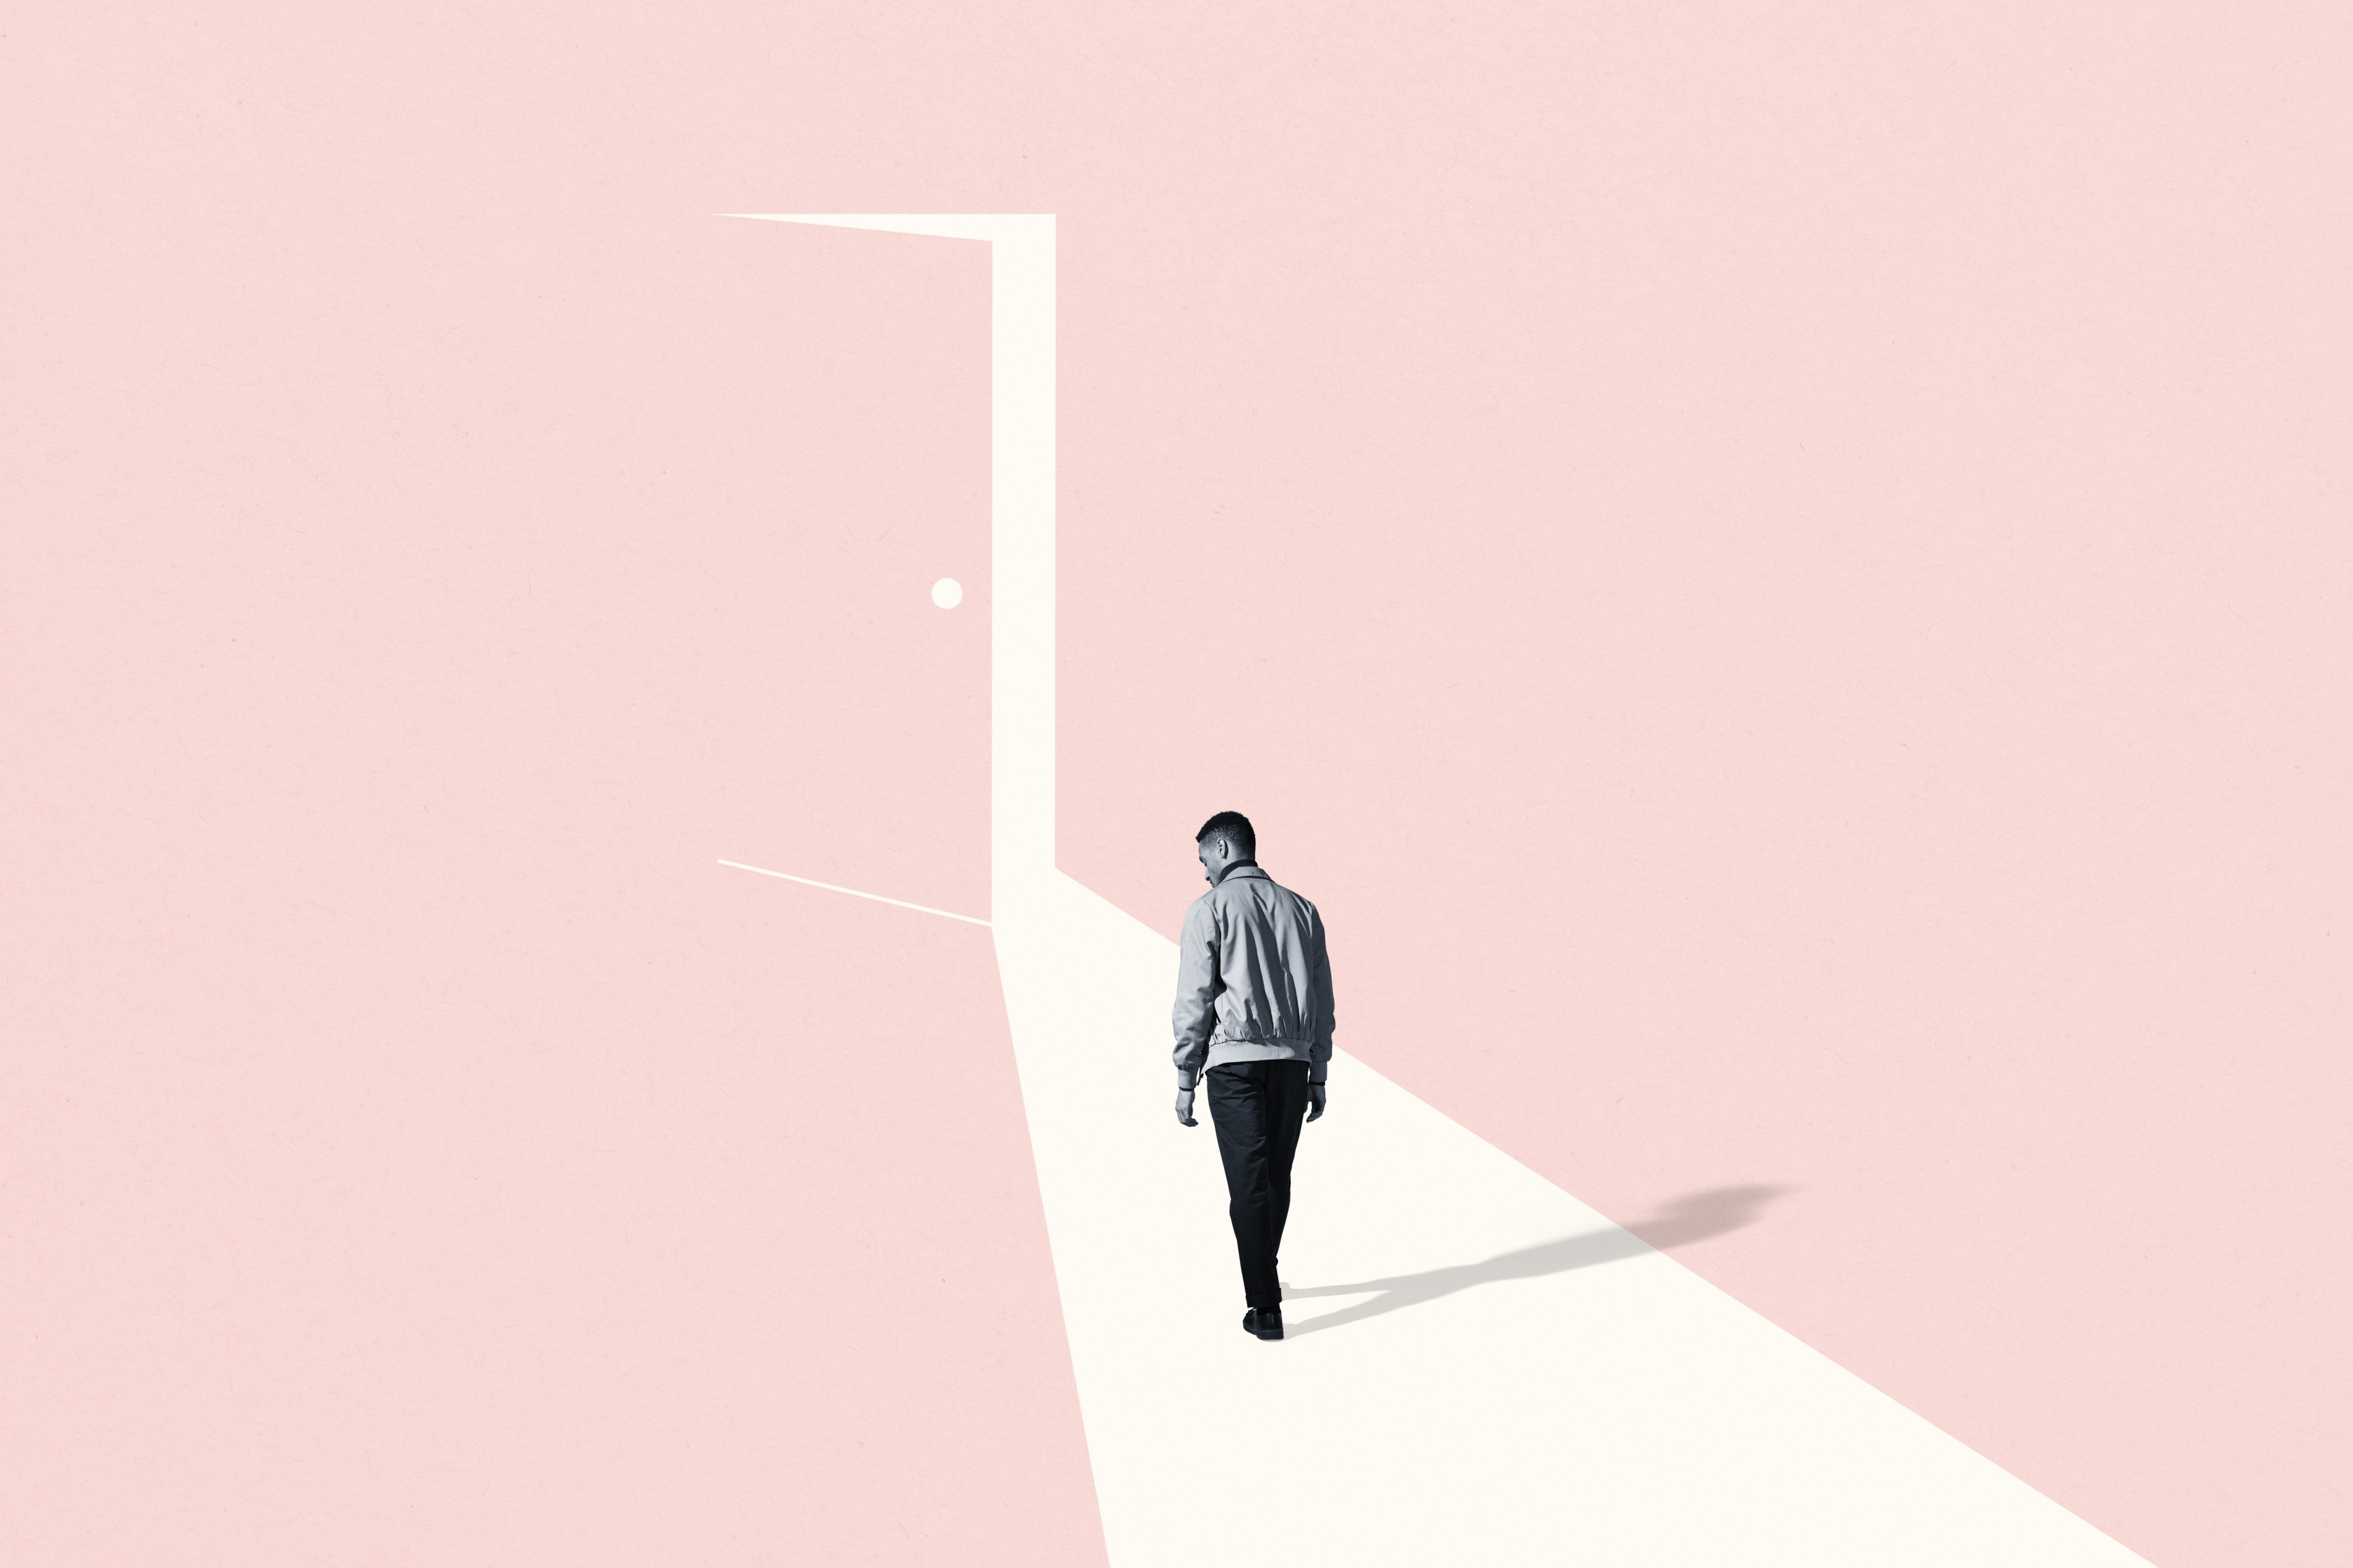 A sad black-and-white person in a flat pink room, walking to a door that's ajar and casting light towards them. Illustration.